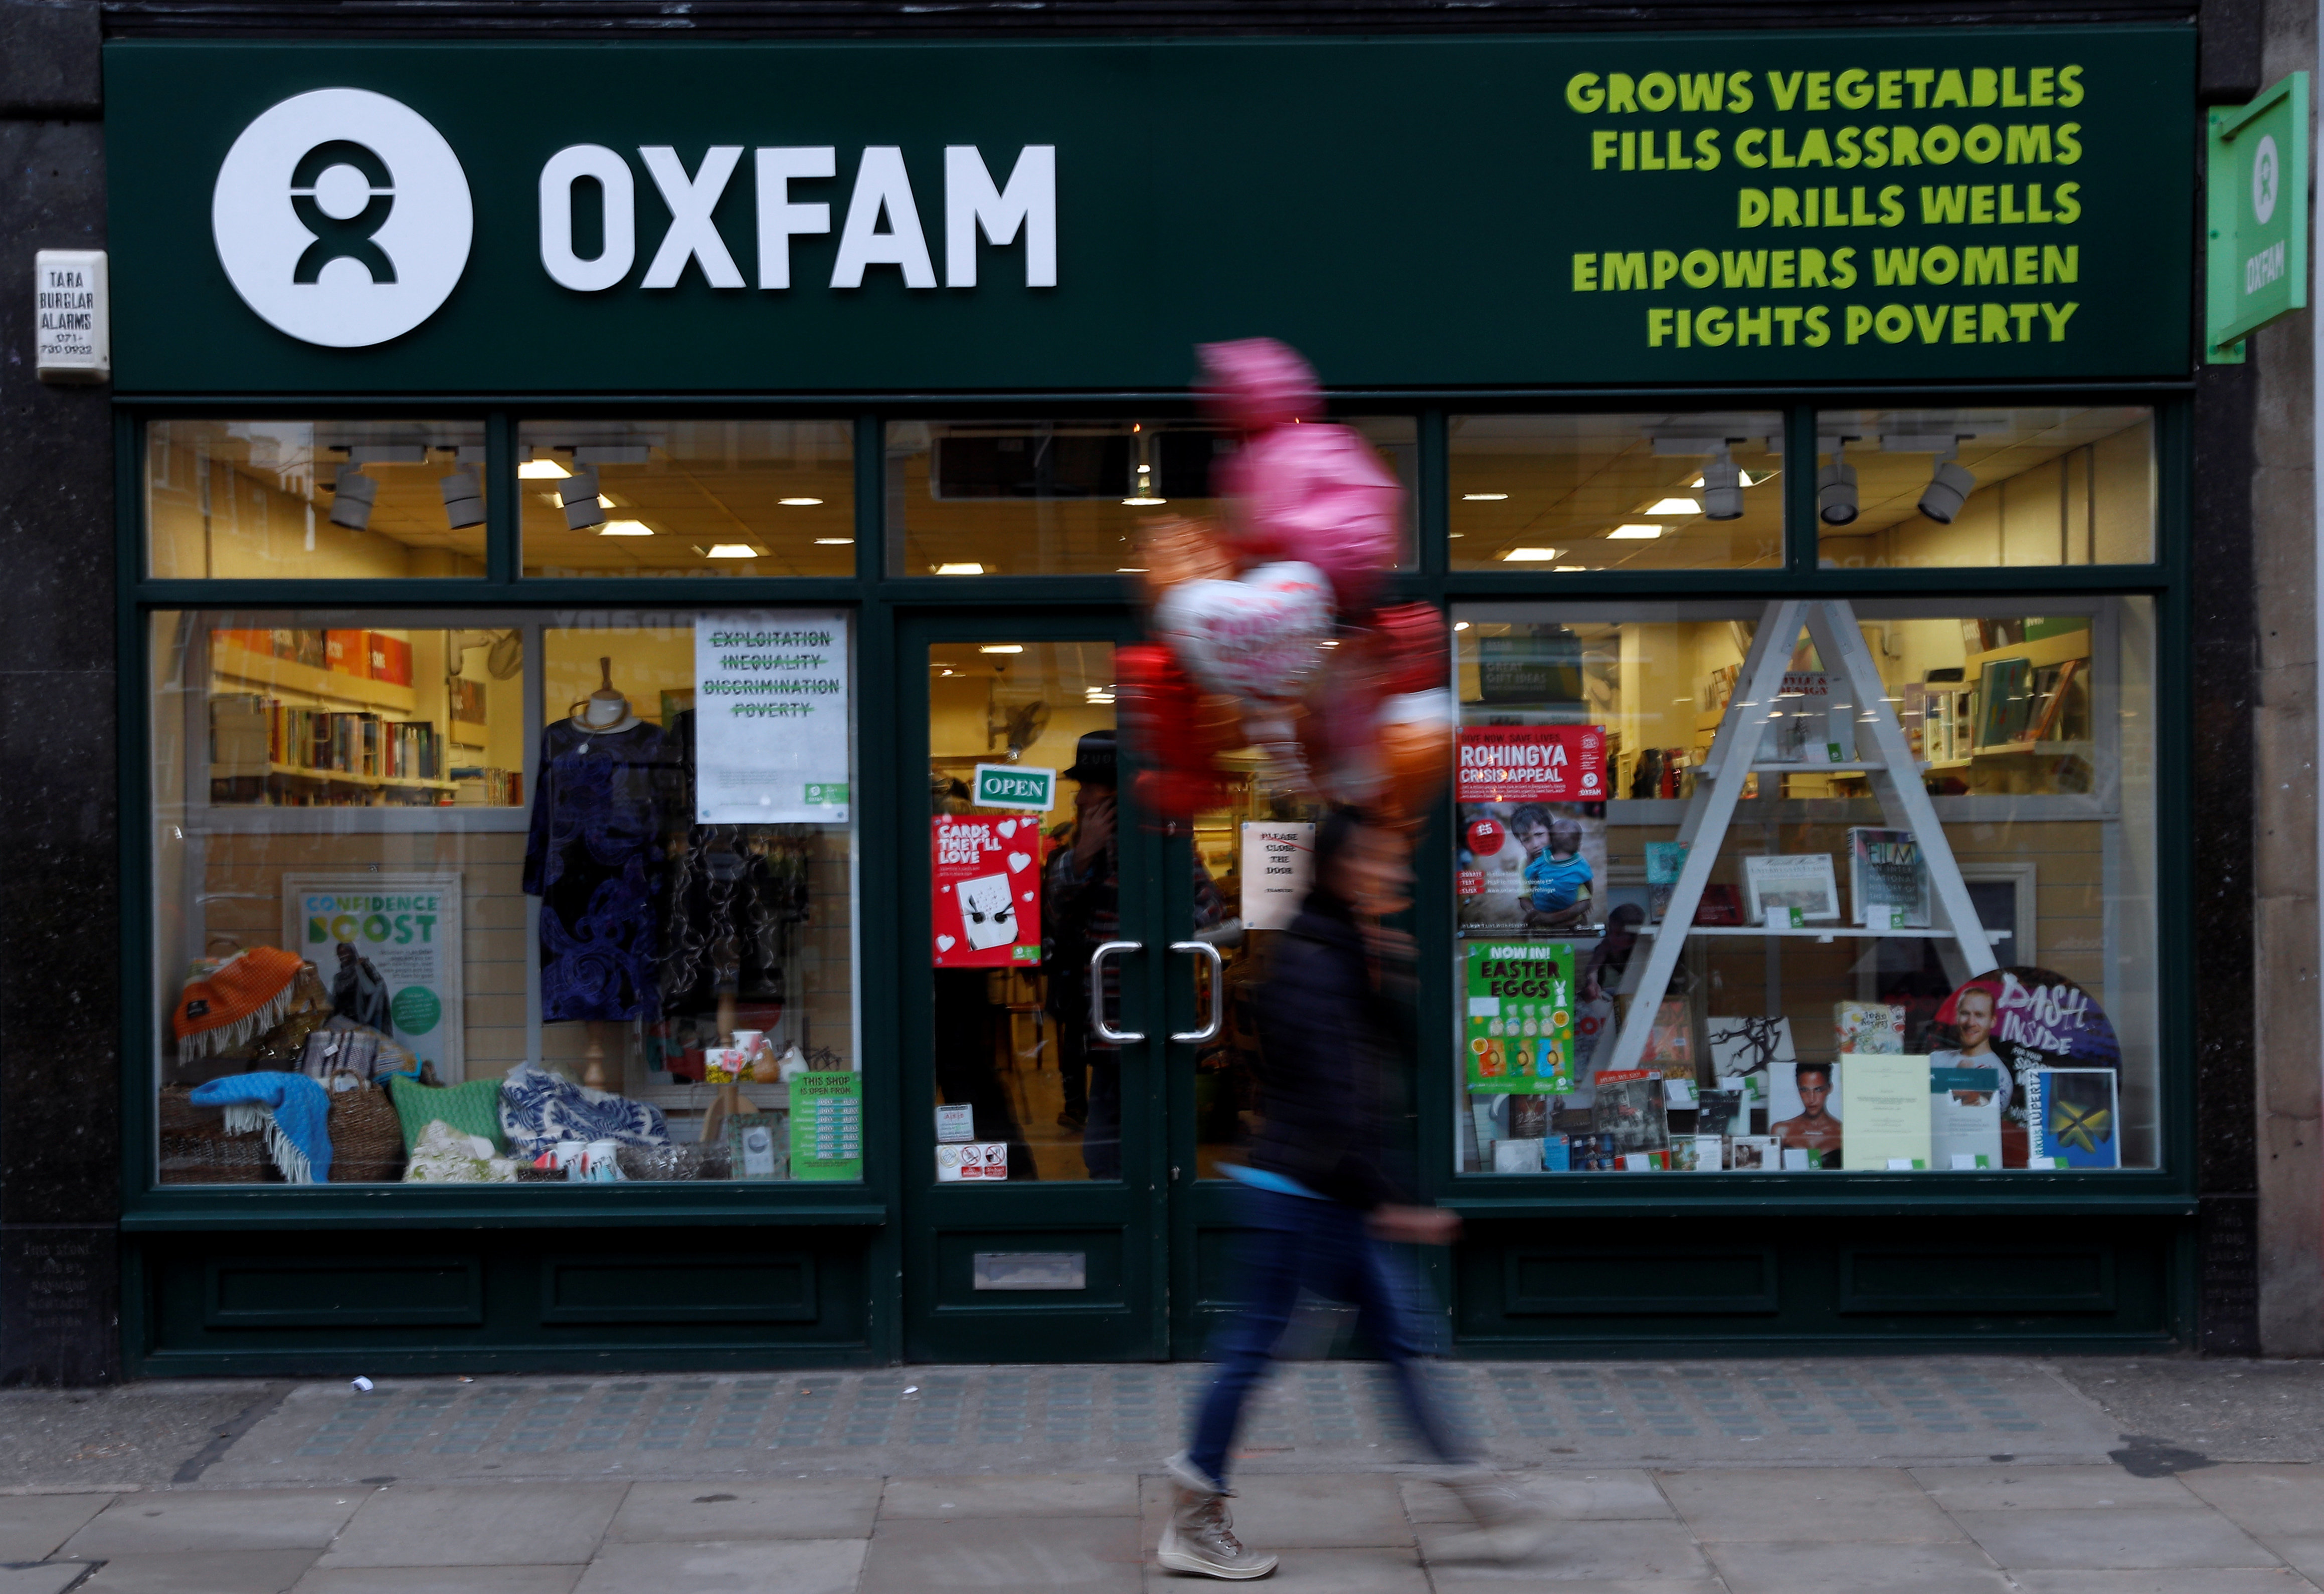 Oxfam Faces Inquiry Over Haiti Claims As Whistleblower Alleges Abuse In UK Shops